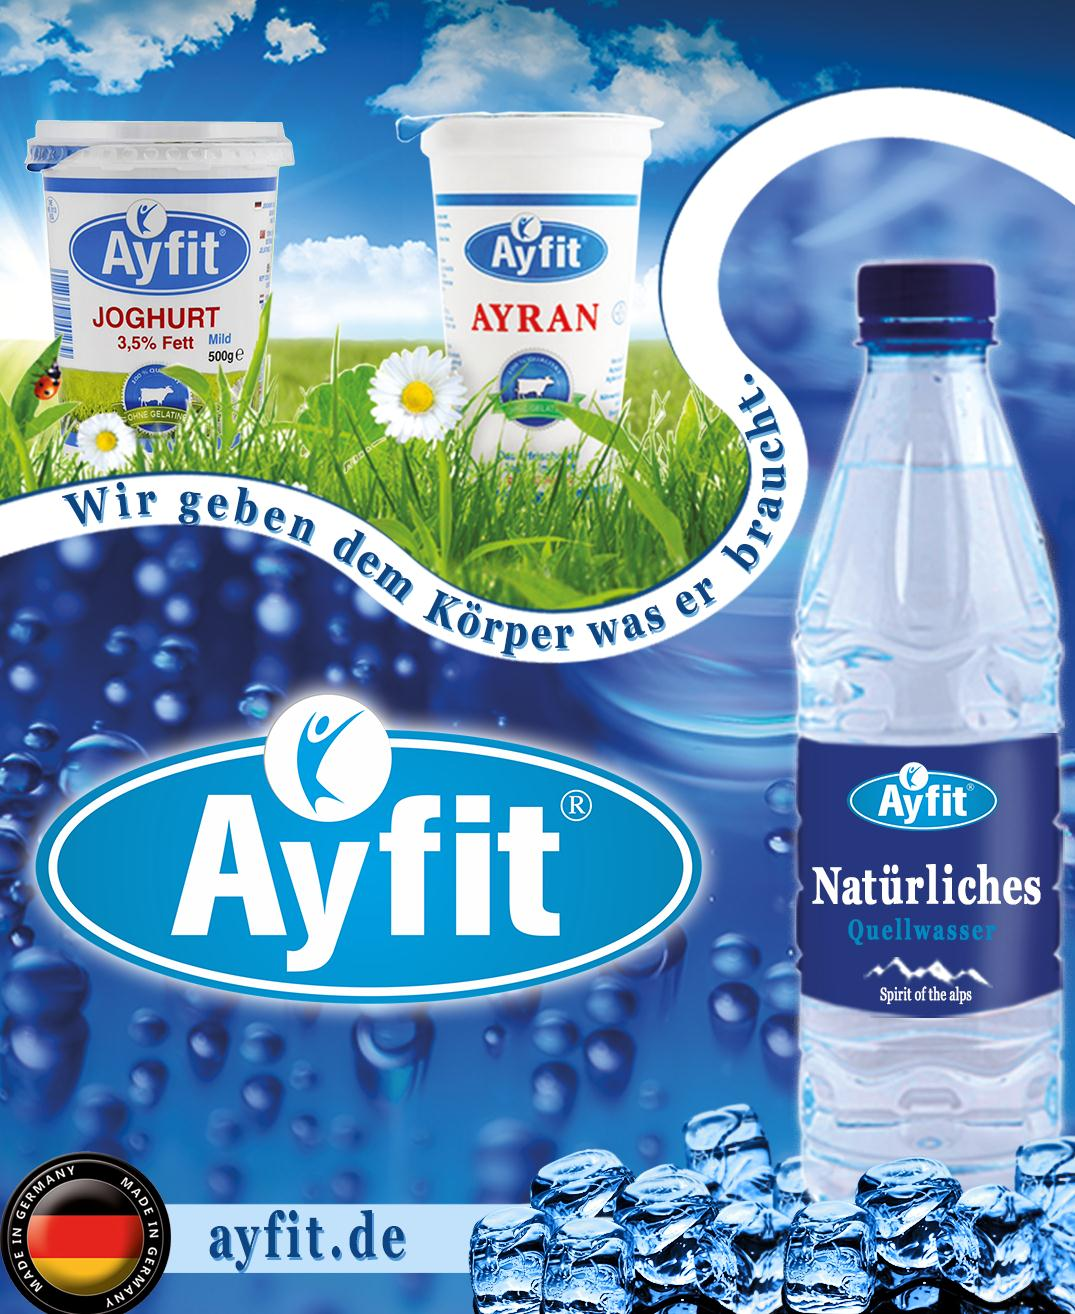 Exclusive Marketing Management MANDANT Ayfit Europa GmbH BRANCHE Hersteller Milchprodukten und